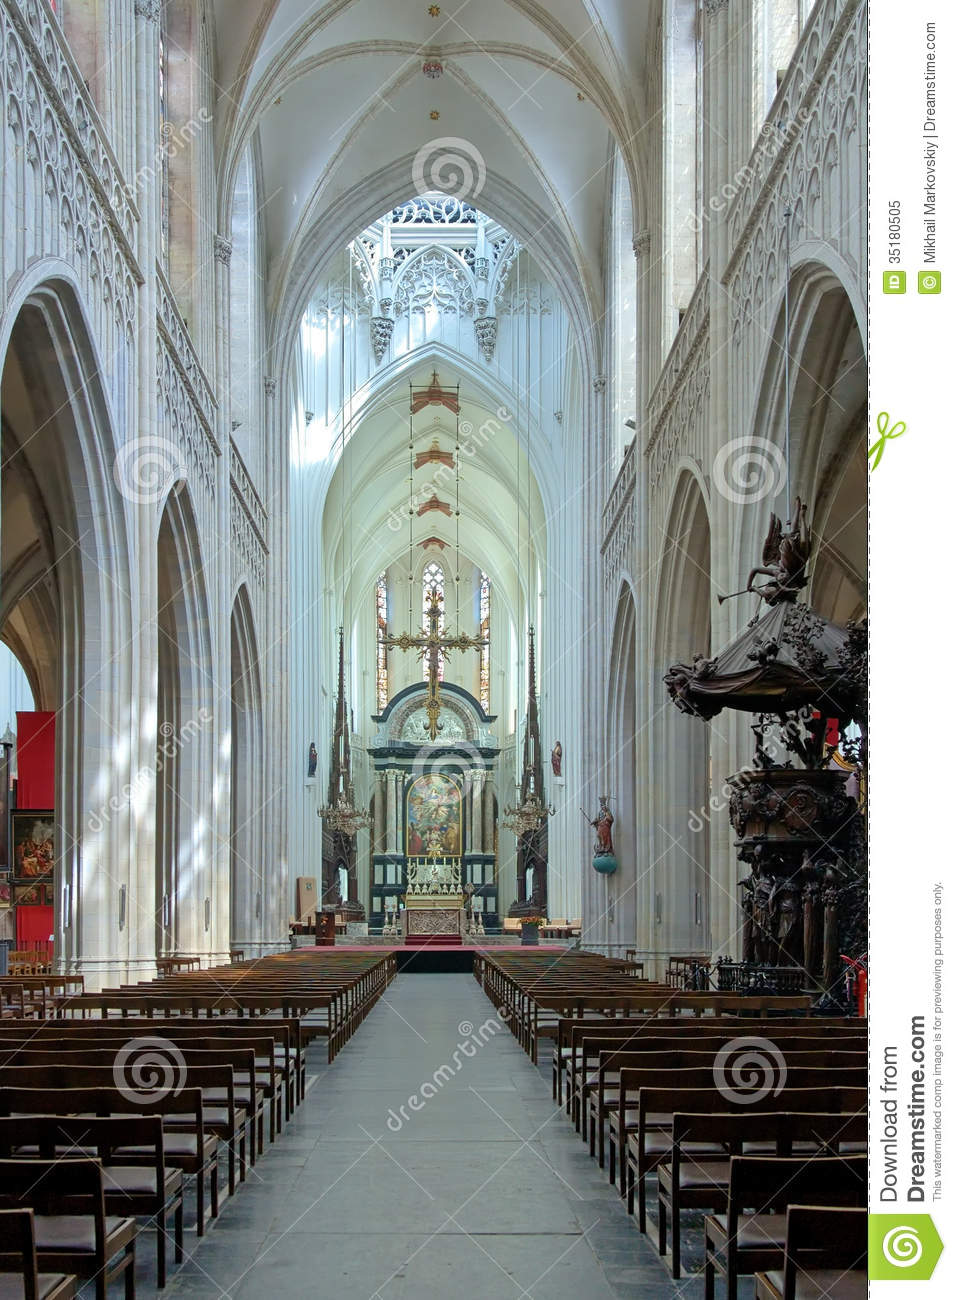 Interior of the cathedral of our lady in antwerp royalty for Interieur antwerpen